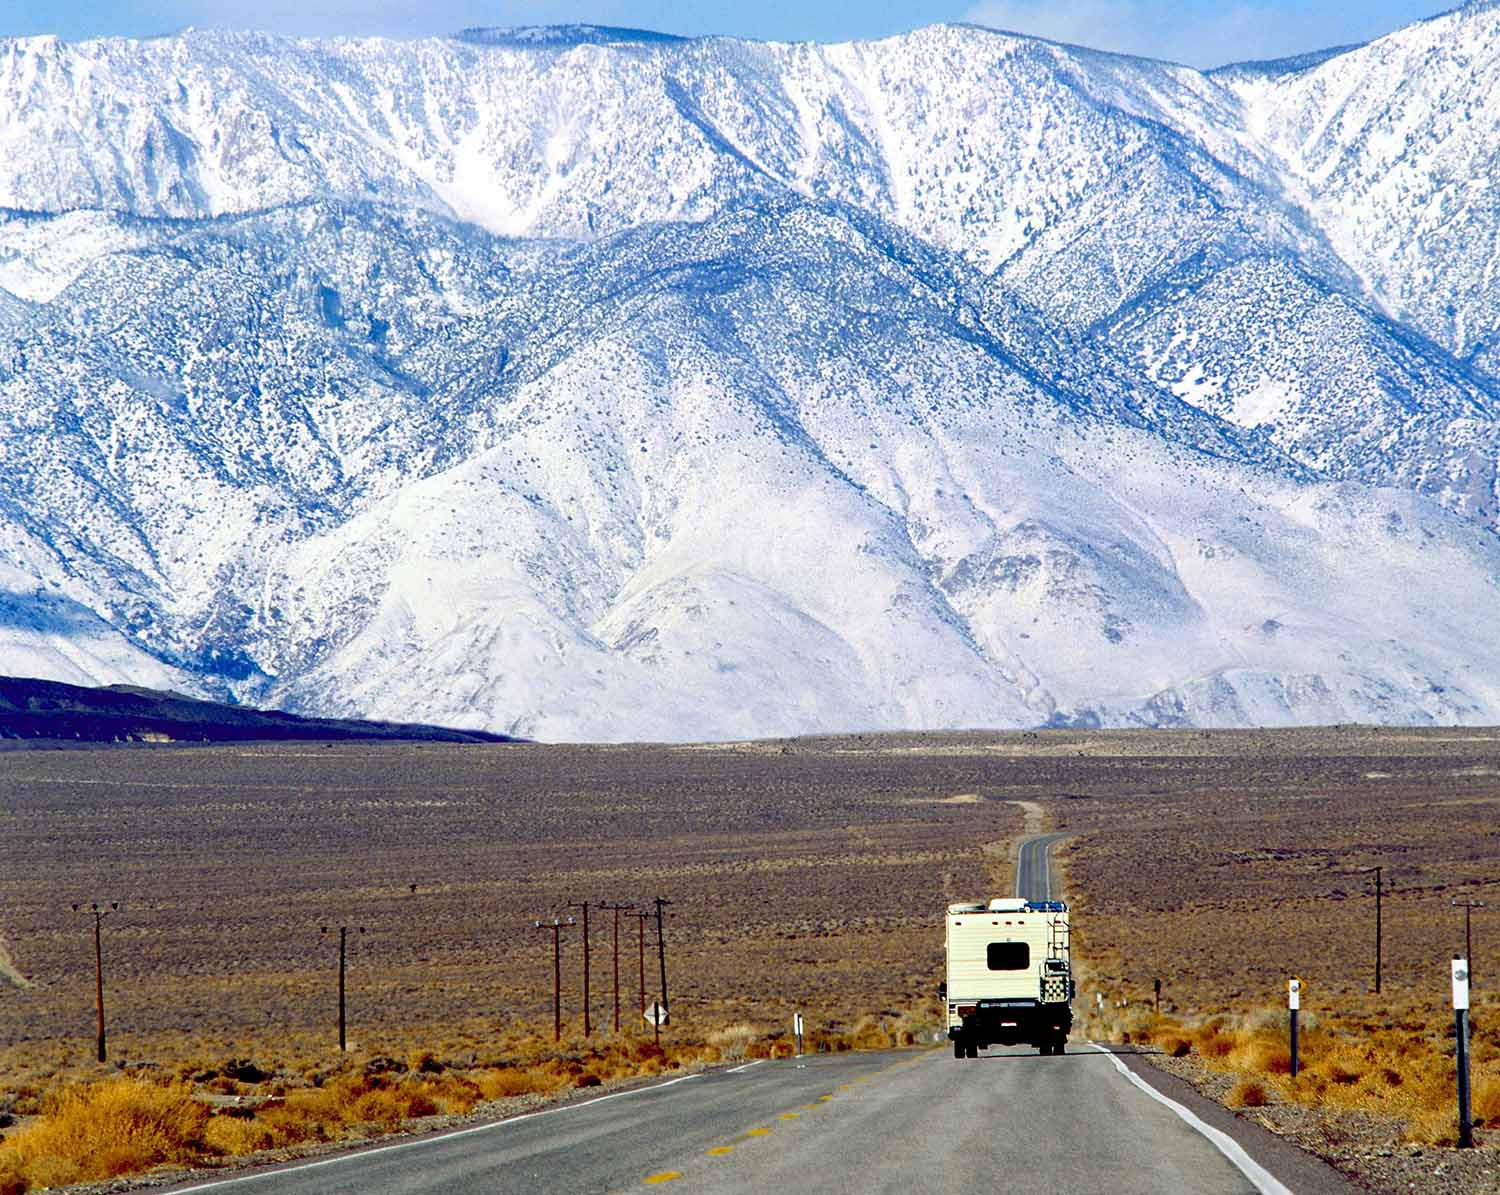 An RV heading toward snowy mountains in the background.